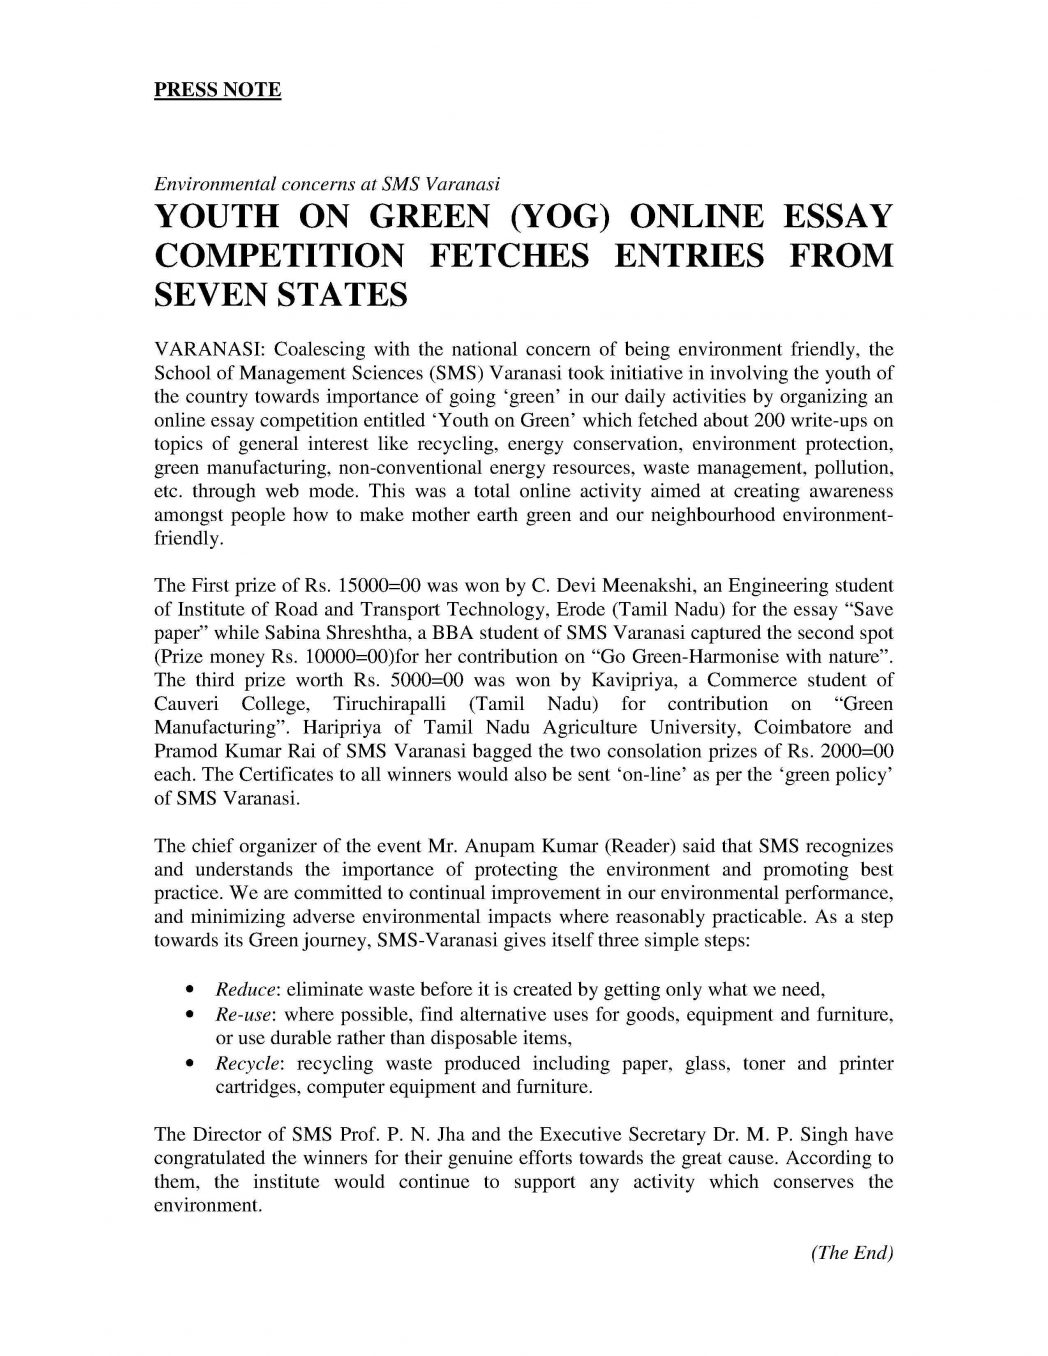 020 Best Essays For College Essay On Good Habits How Tot Application Online Yog Press Re About Yourself Examples Your Background Failure Prompt Off Hook 1048x1356 Example Amazing To Start An With A Quote Analysis Book Full